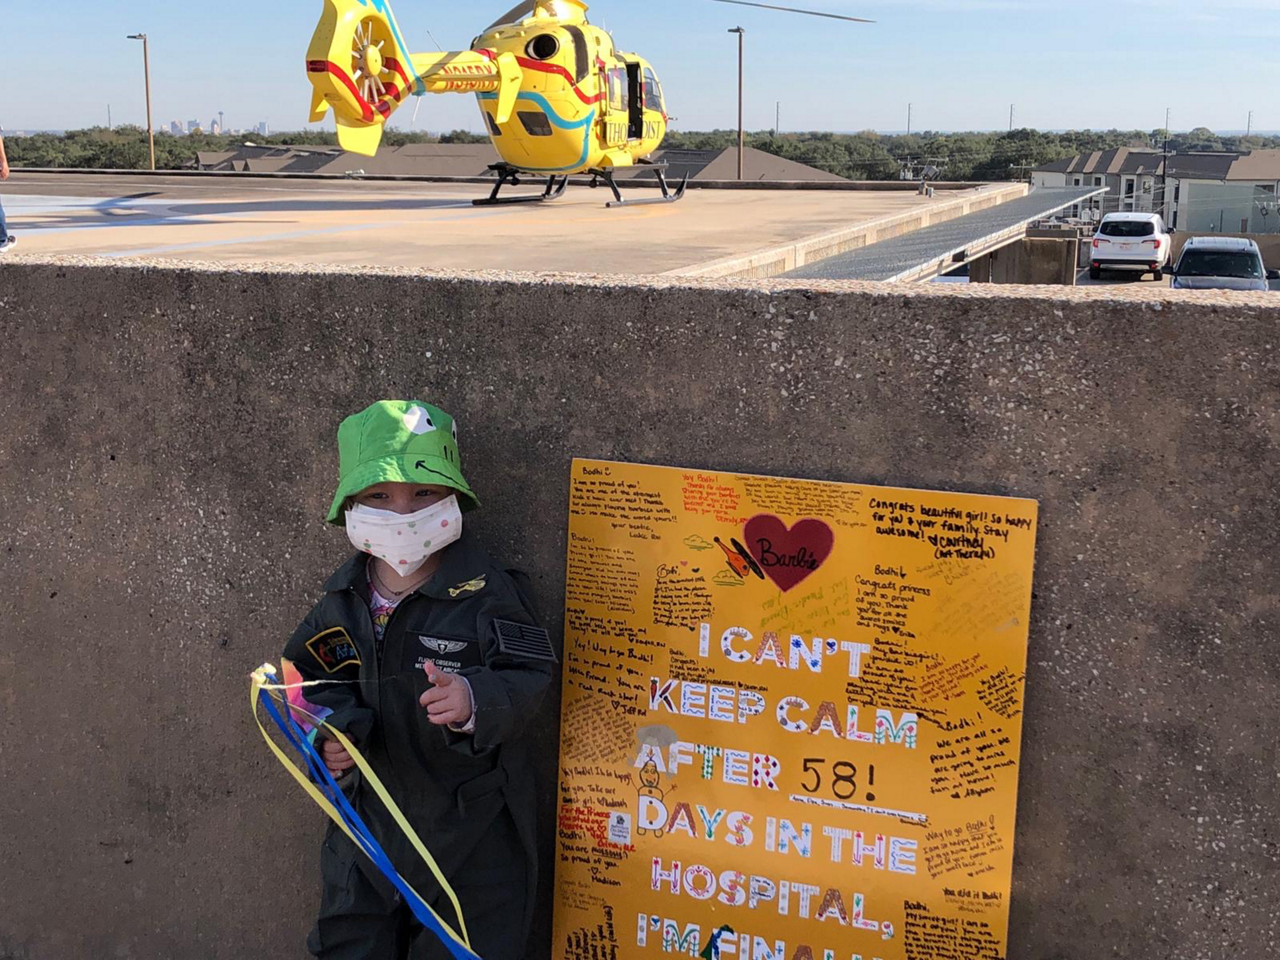 Bodhi takes a commemorative photo with Methodist AirCare's EC135 helicopter visible in the background.